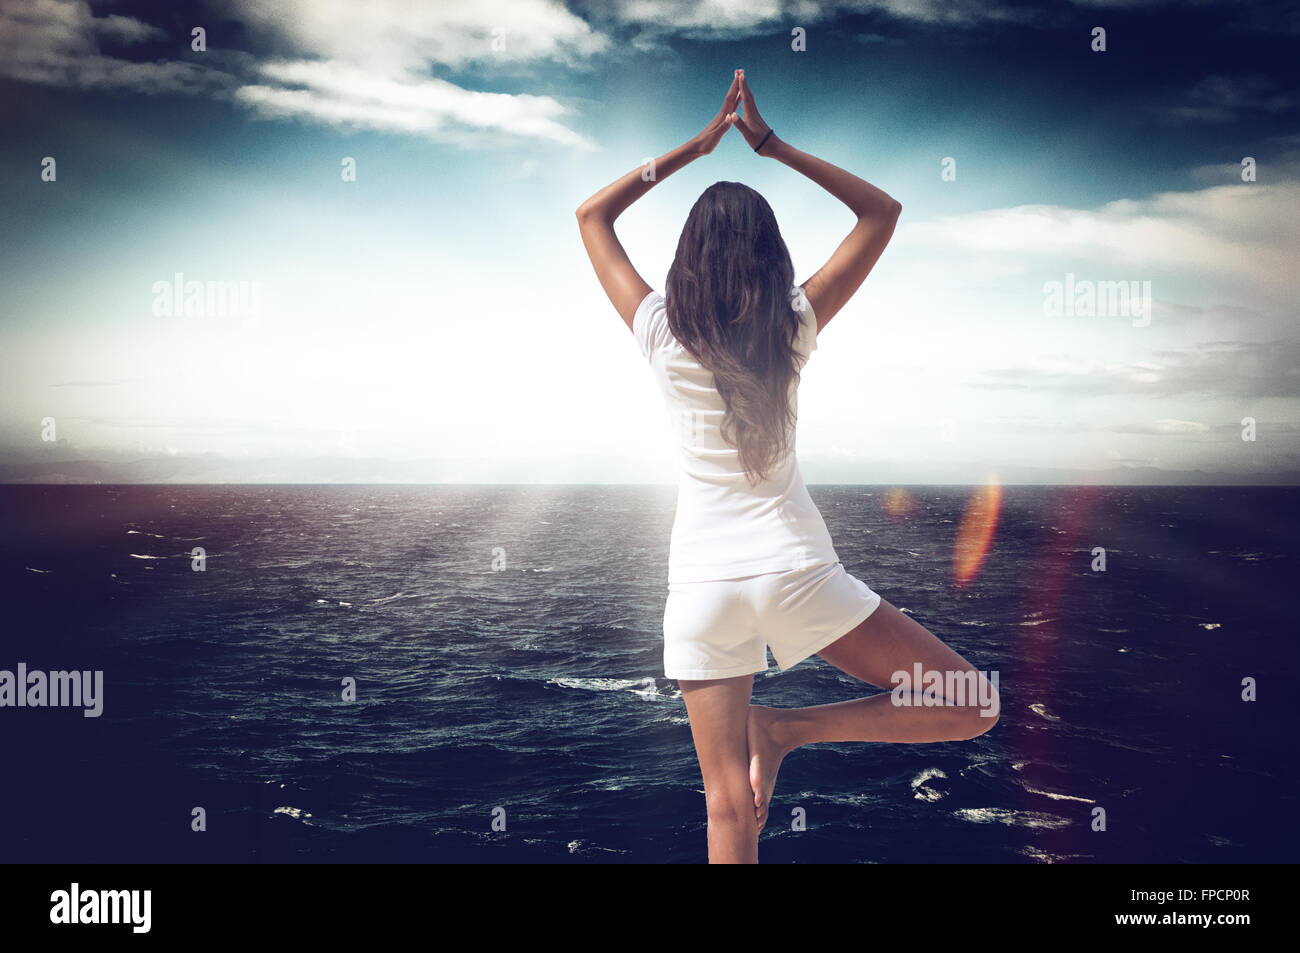 Dramatic mystical image with flare effect and vignette of a young woman practising yoga at the sea standing in a - Stock Image